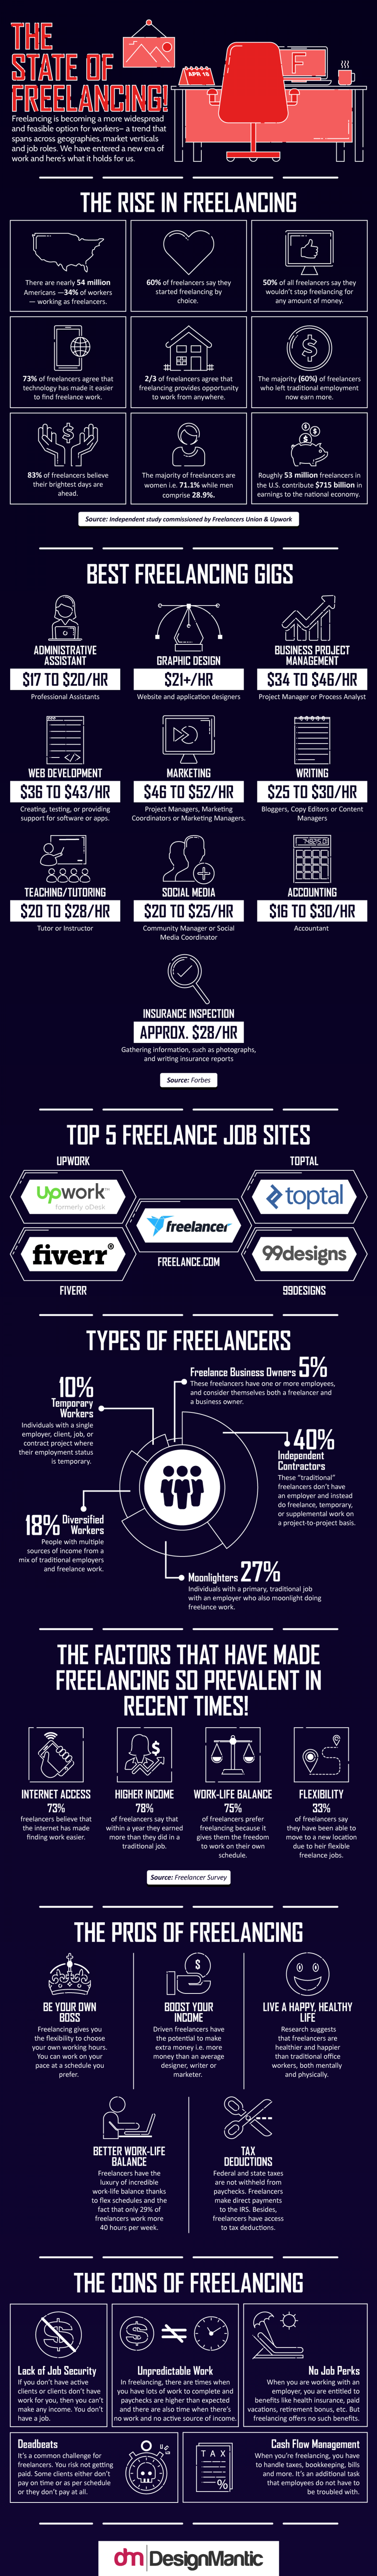 The State Of Freelancing Infographic